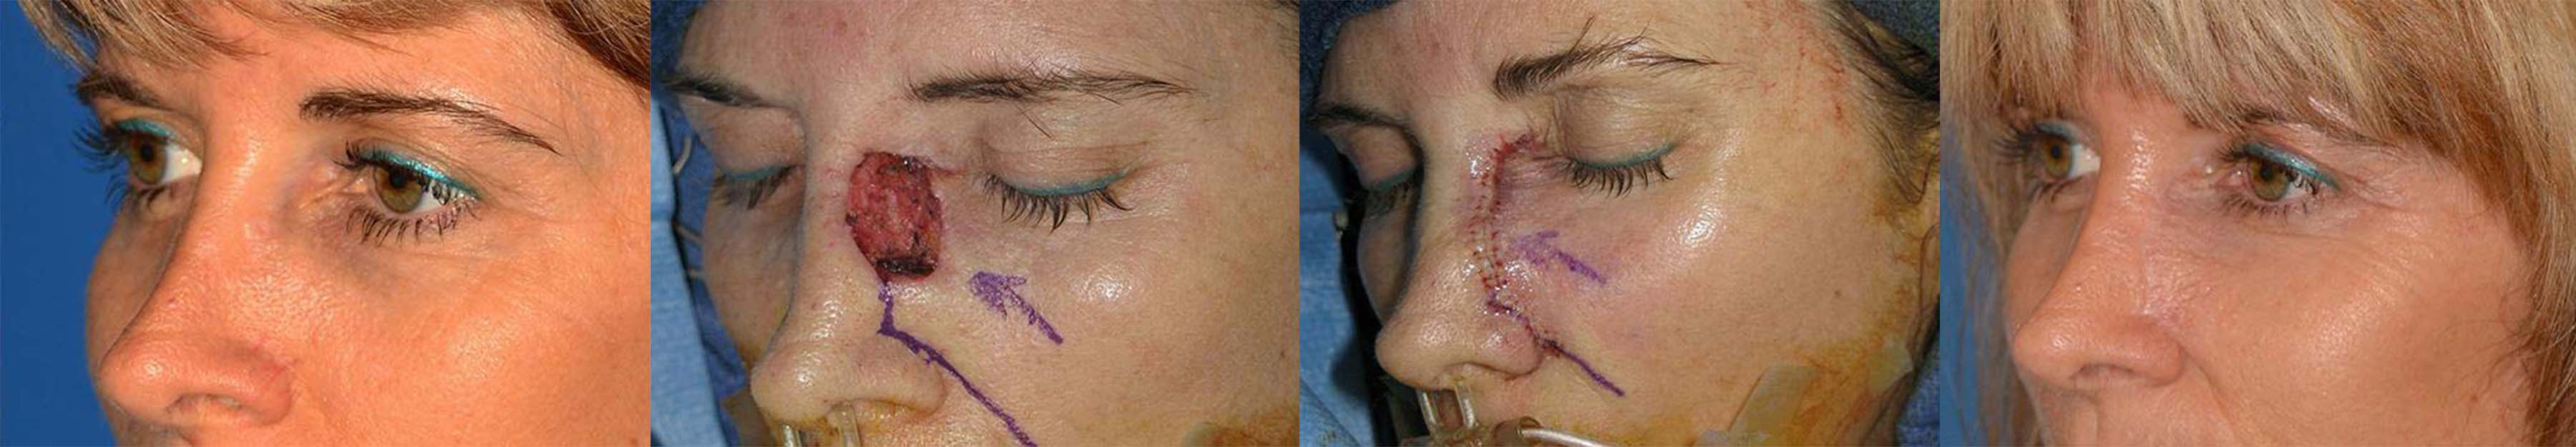 Mohs Surgery and Skin Cancer